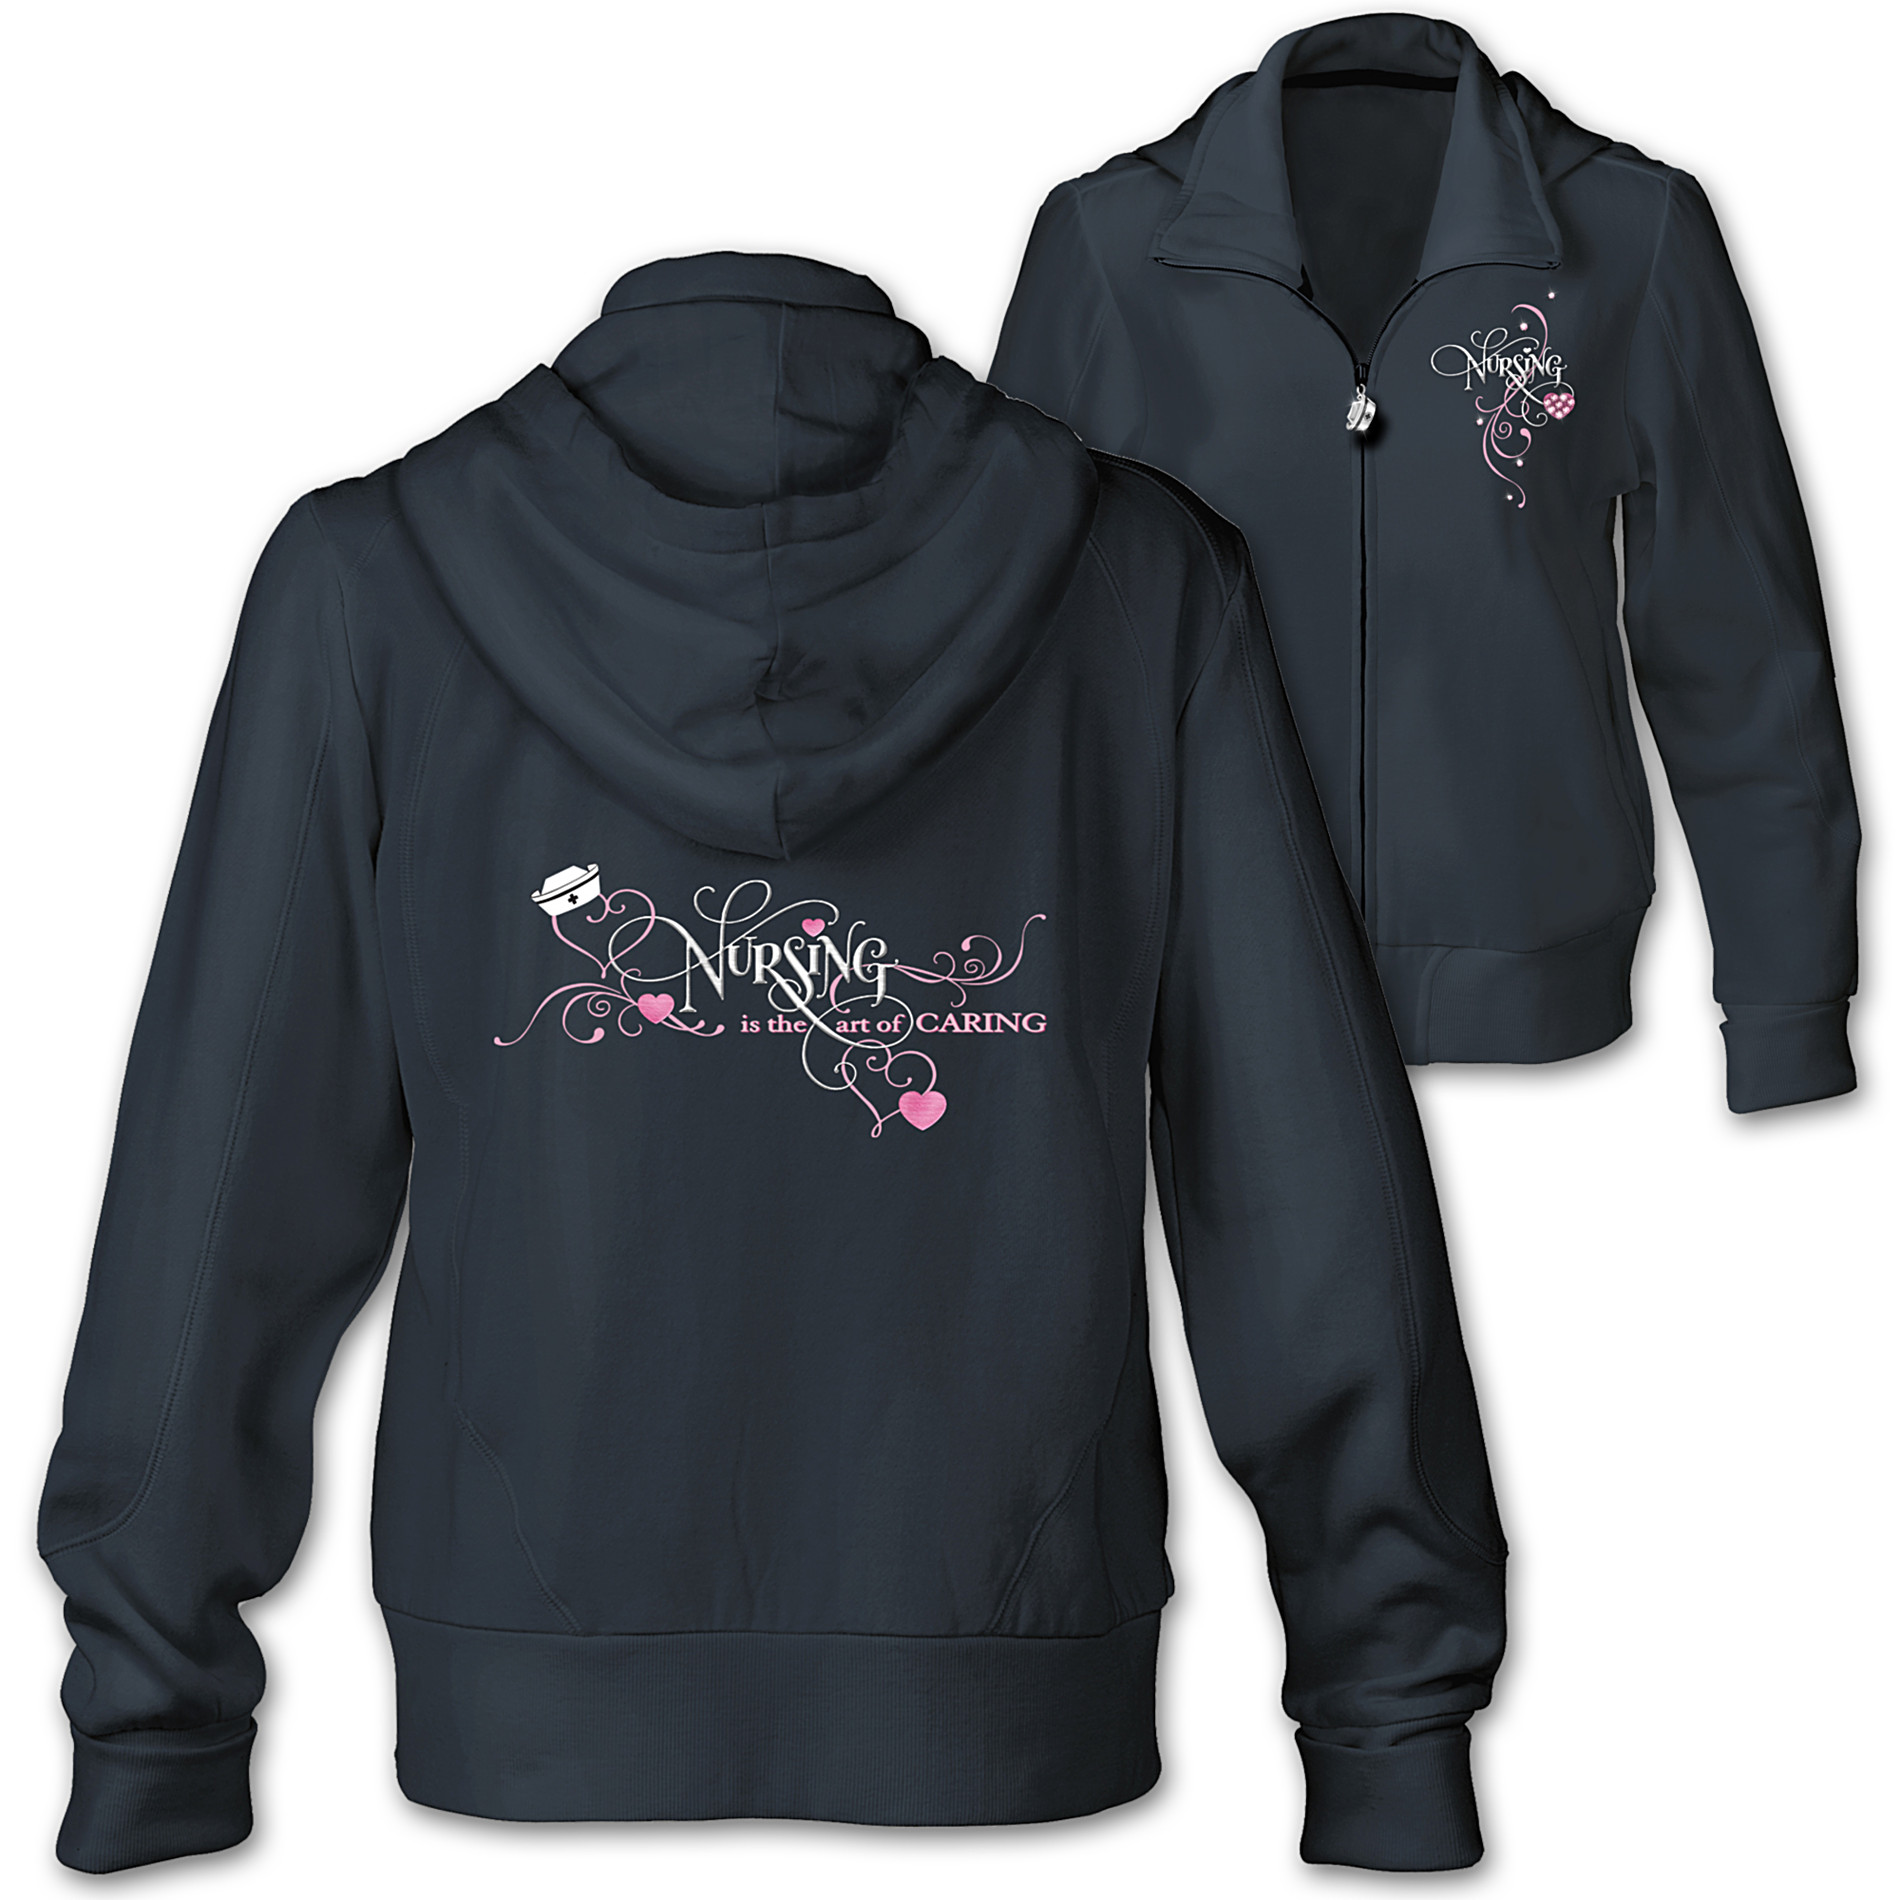 The Bradford Exchange Nursing Women's Hoodie: The Art Of Caring at Sears.com